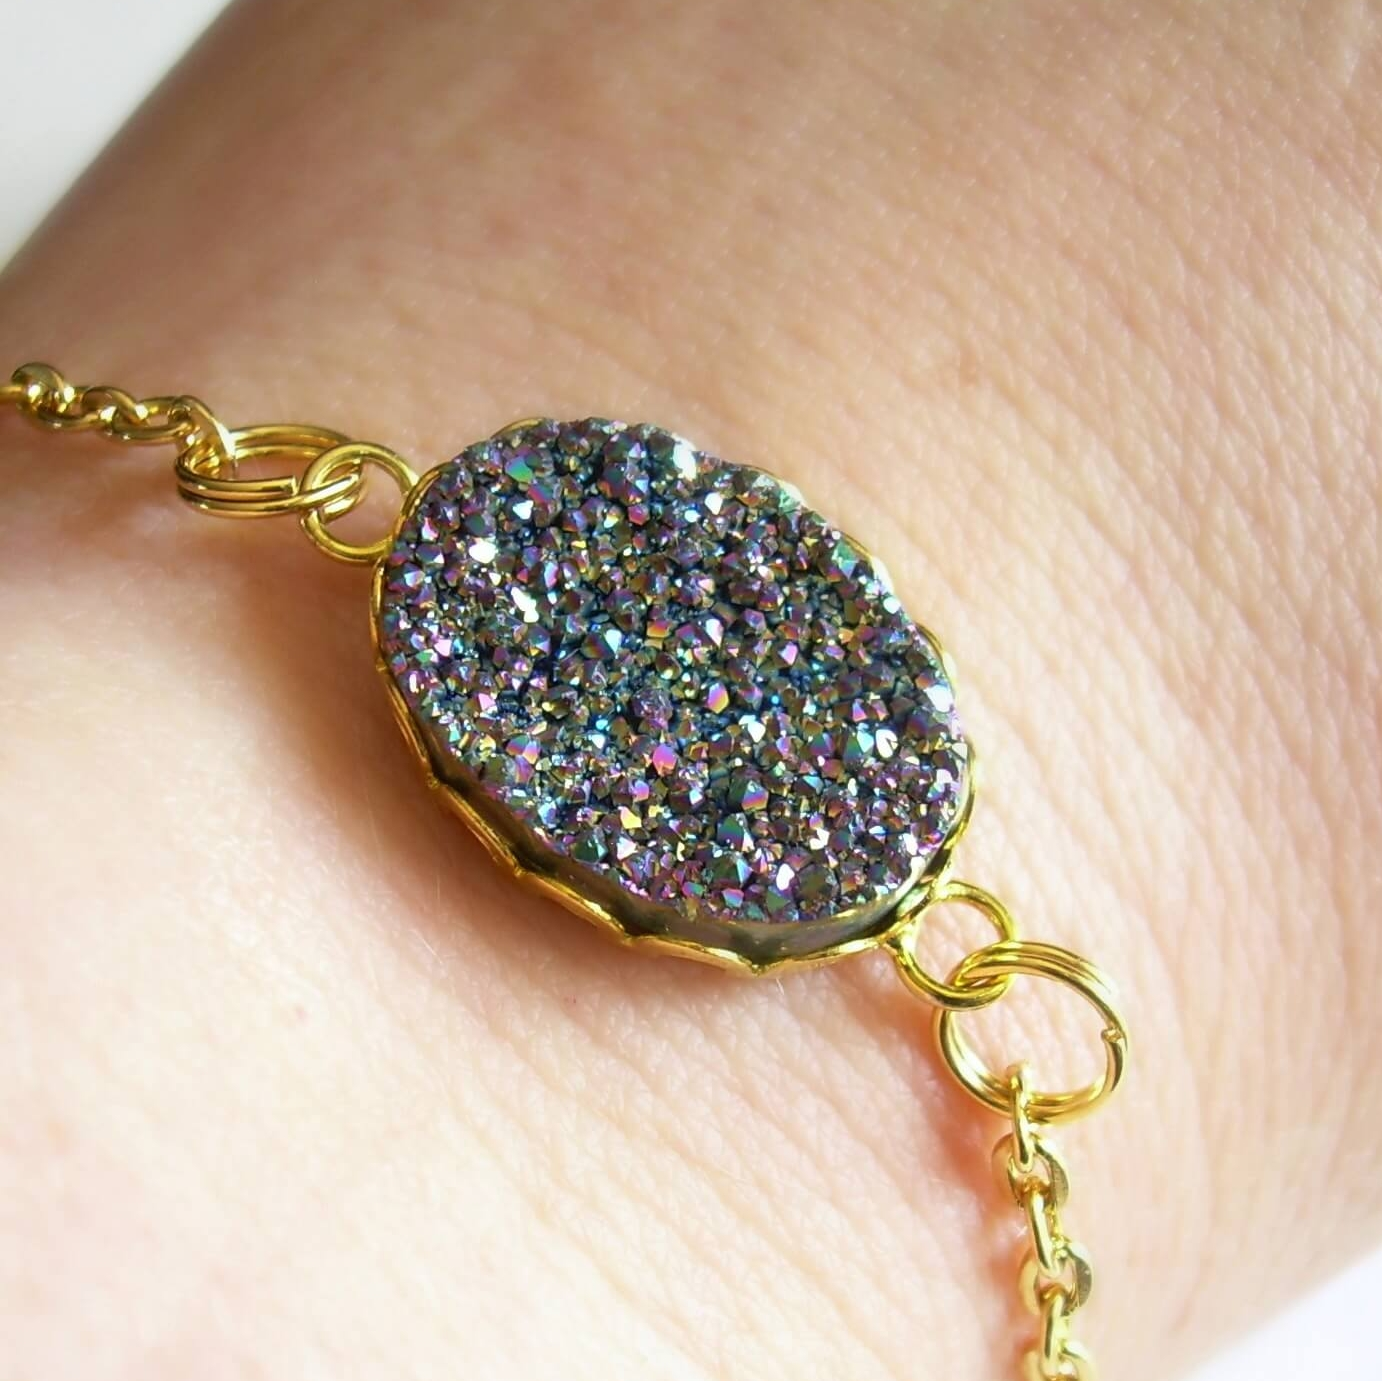 Rainbow Druzy Bracelet, Gold Chain